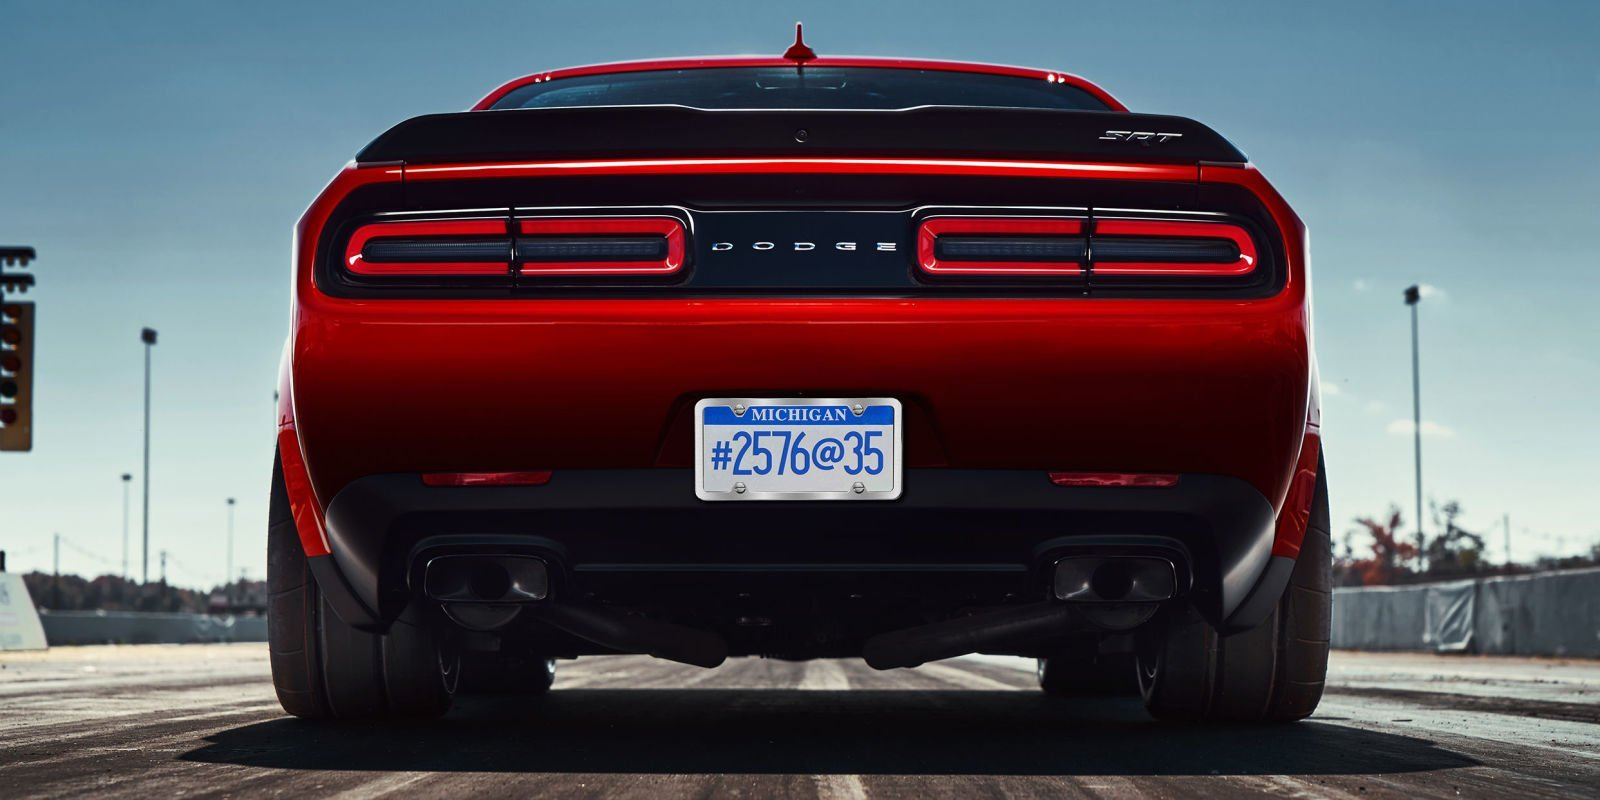 2018 Dodge Challenger SRT Demon Rear Heck Bereifung Drag Strip rot 315/40R18 Heckleuchten